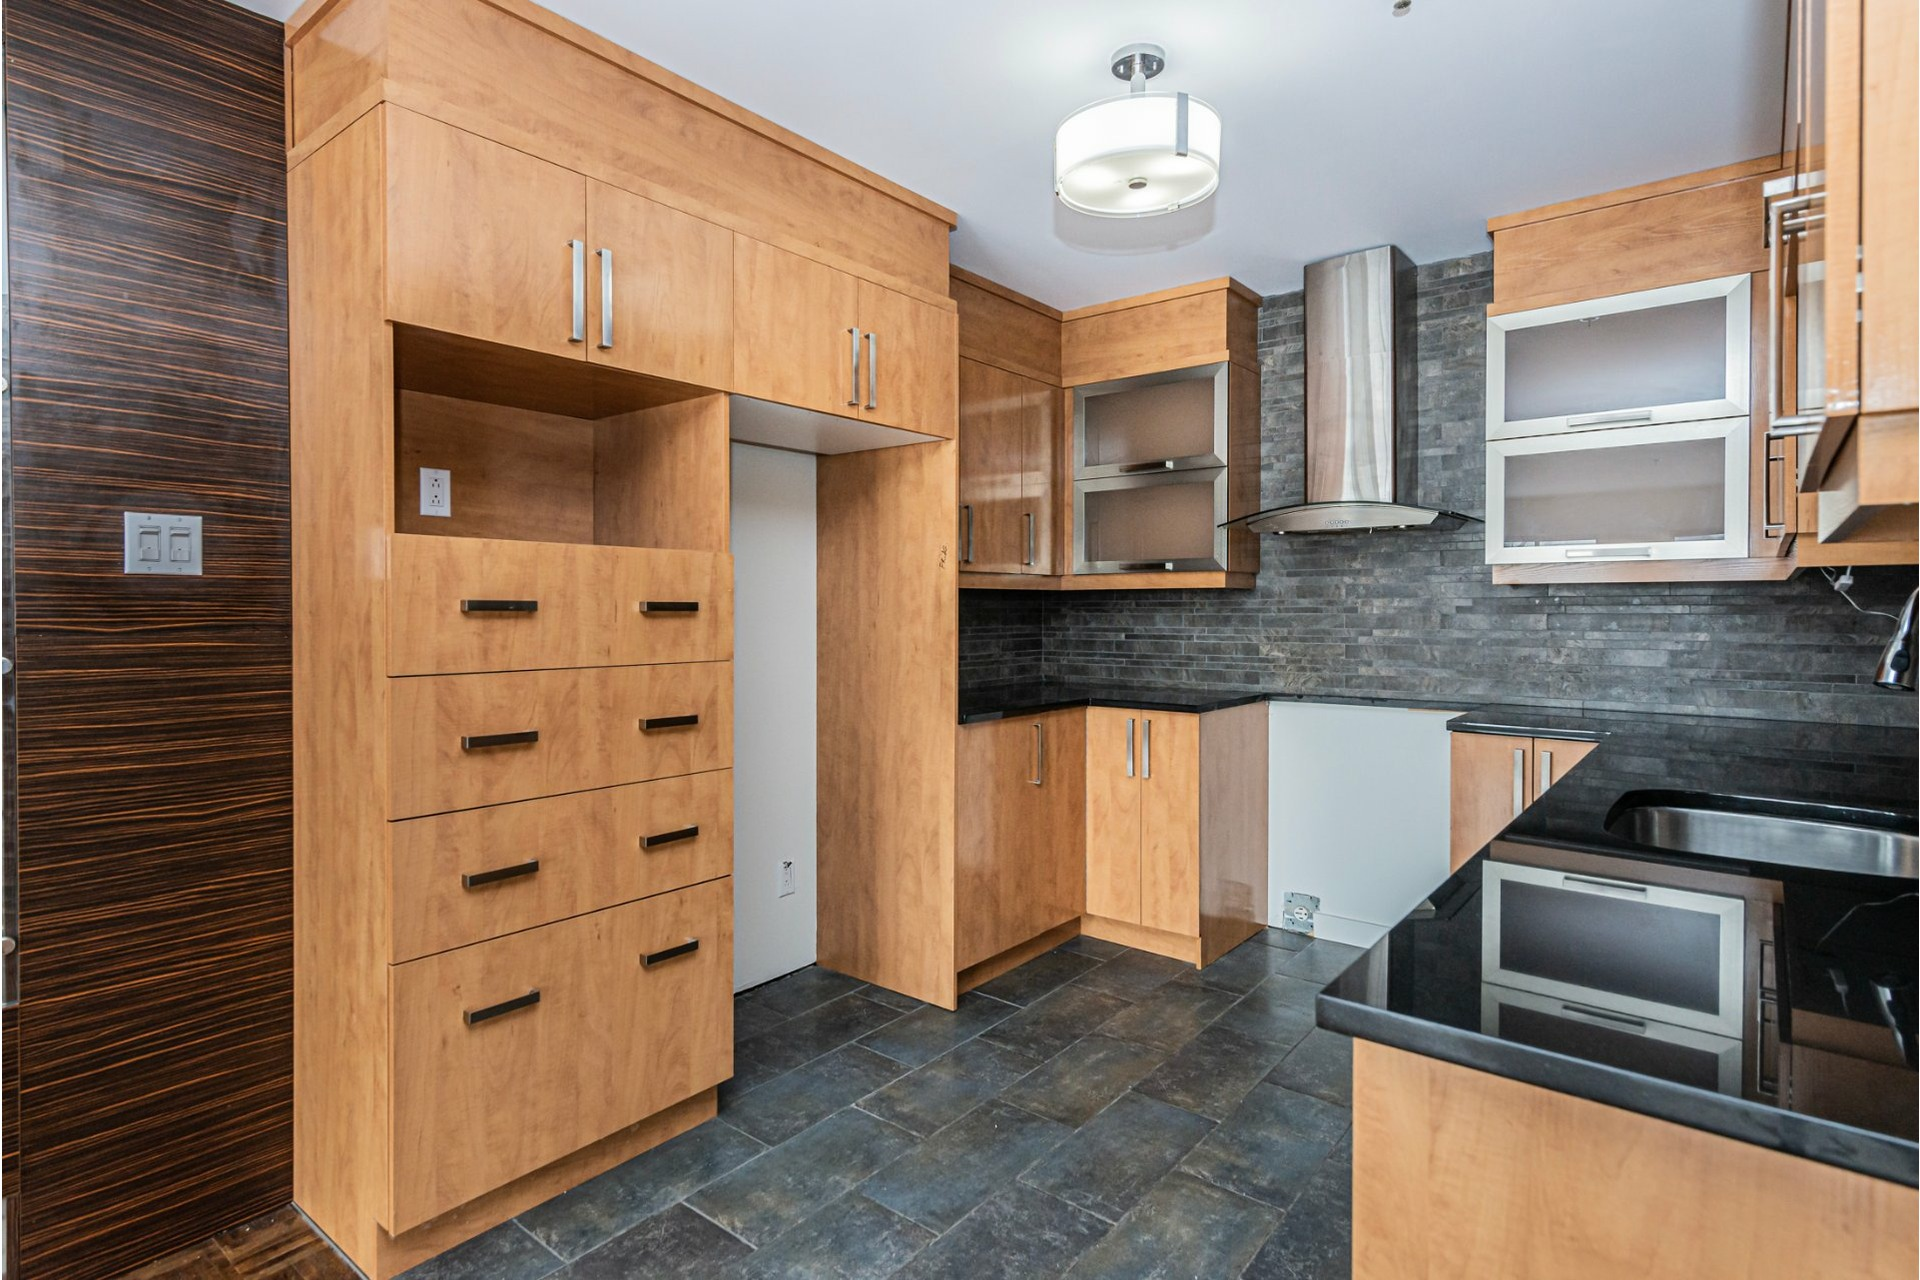 image 11 - Apartment For sale Brossard - 6 rooms